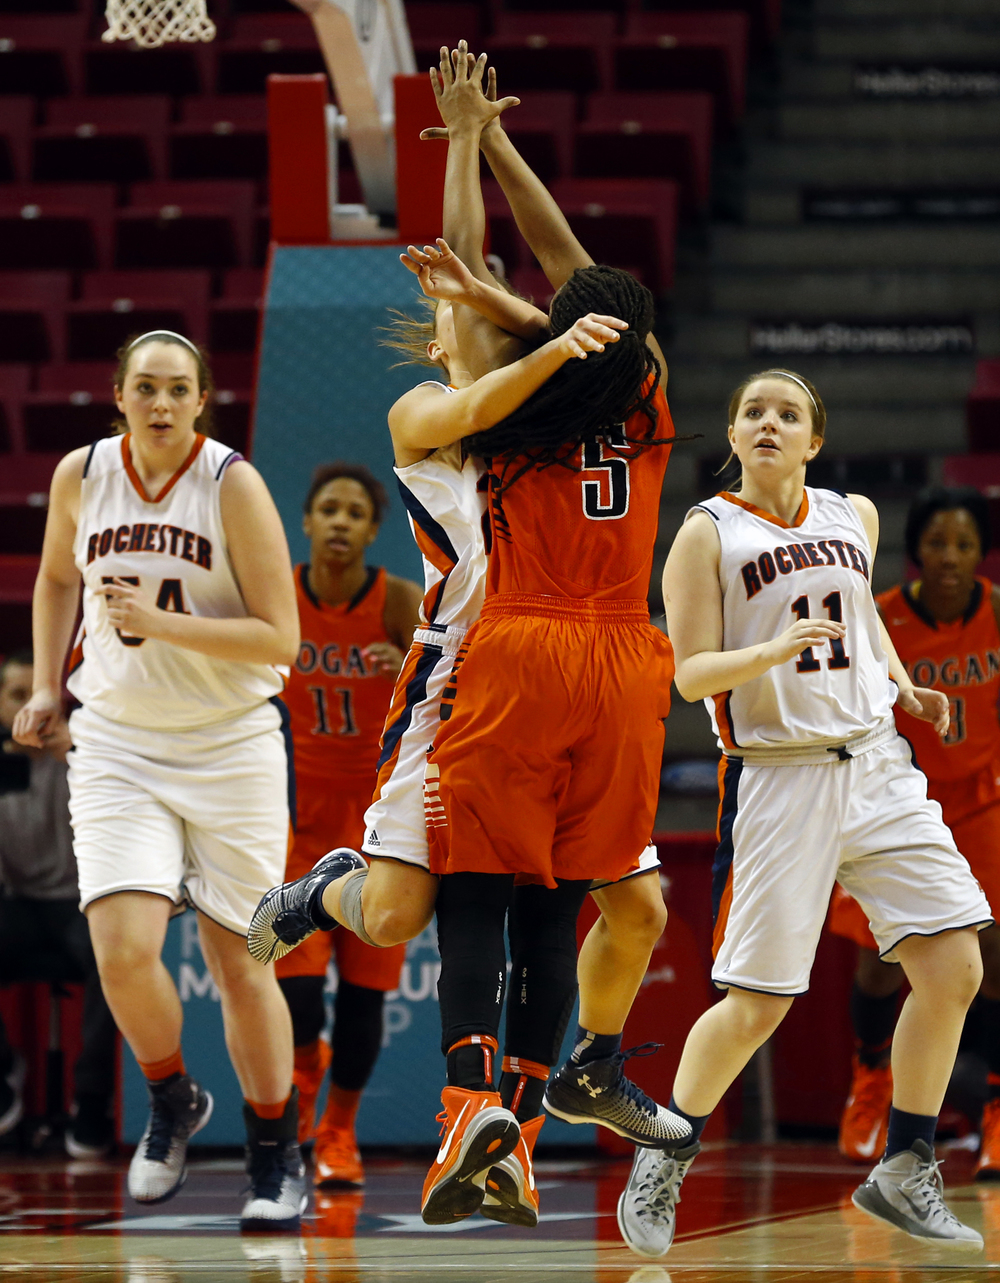 Rochester's Sydney Lett collides with Chicago Bogan's Deja Dickens as she unleashes a shot during the Class 3A state tournament semifinal at Redbird Arena in Normal Friday, March 6, 2015. Ted Schurter/The State Journal-Register